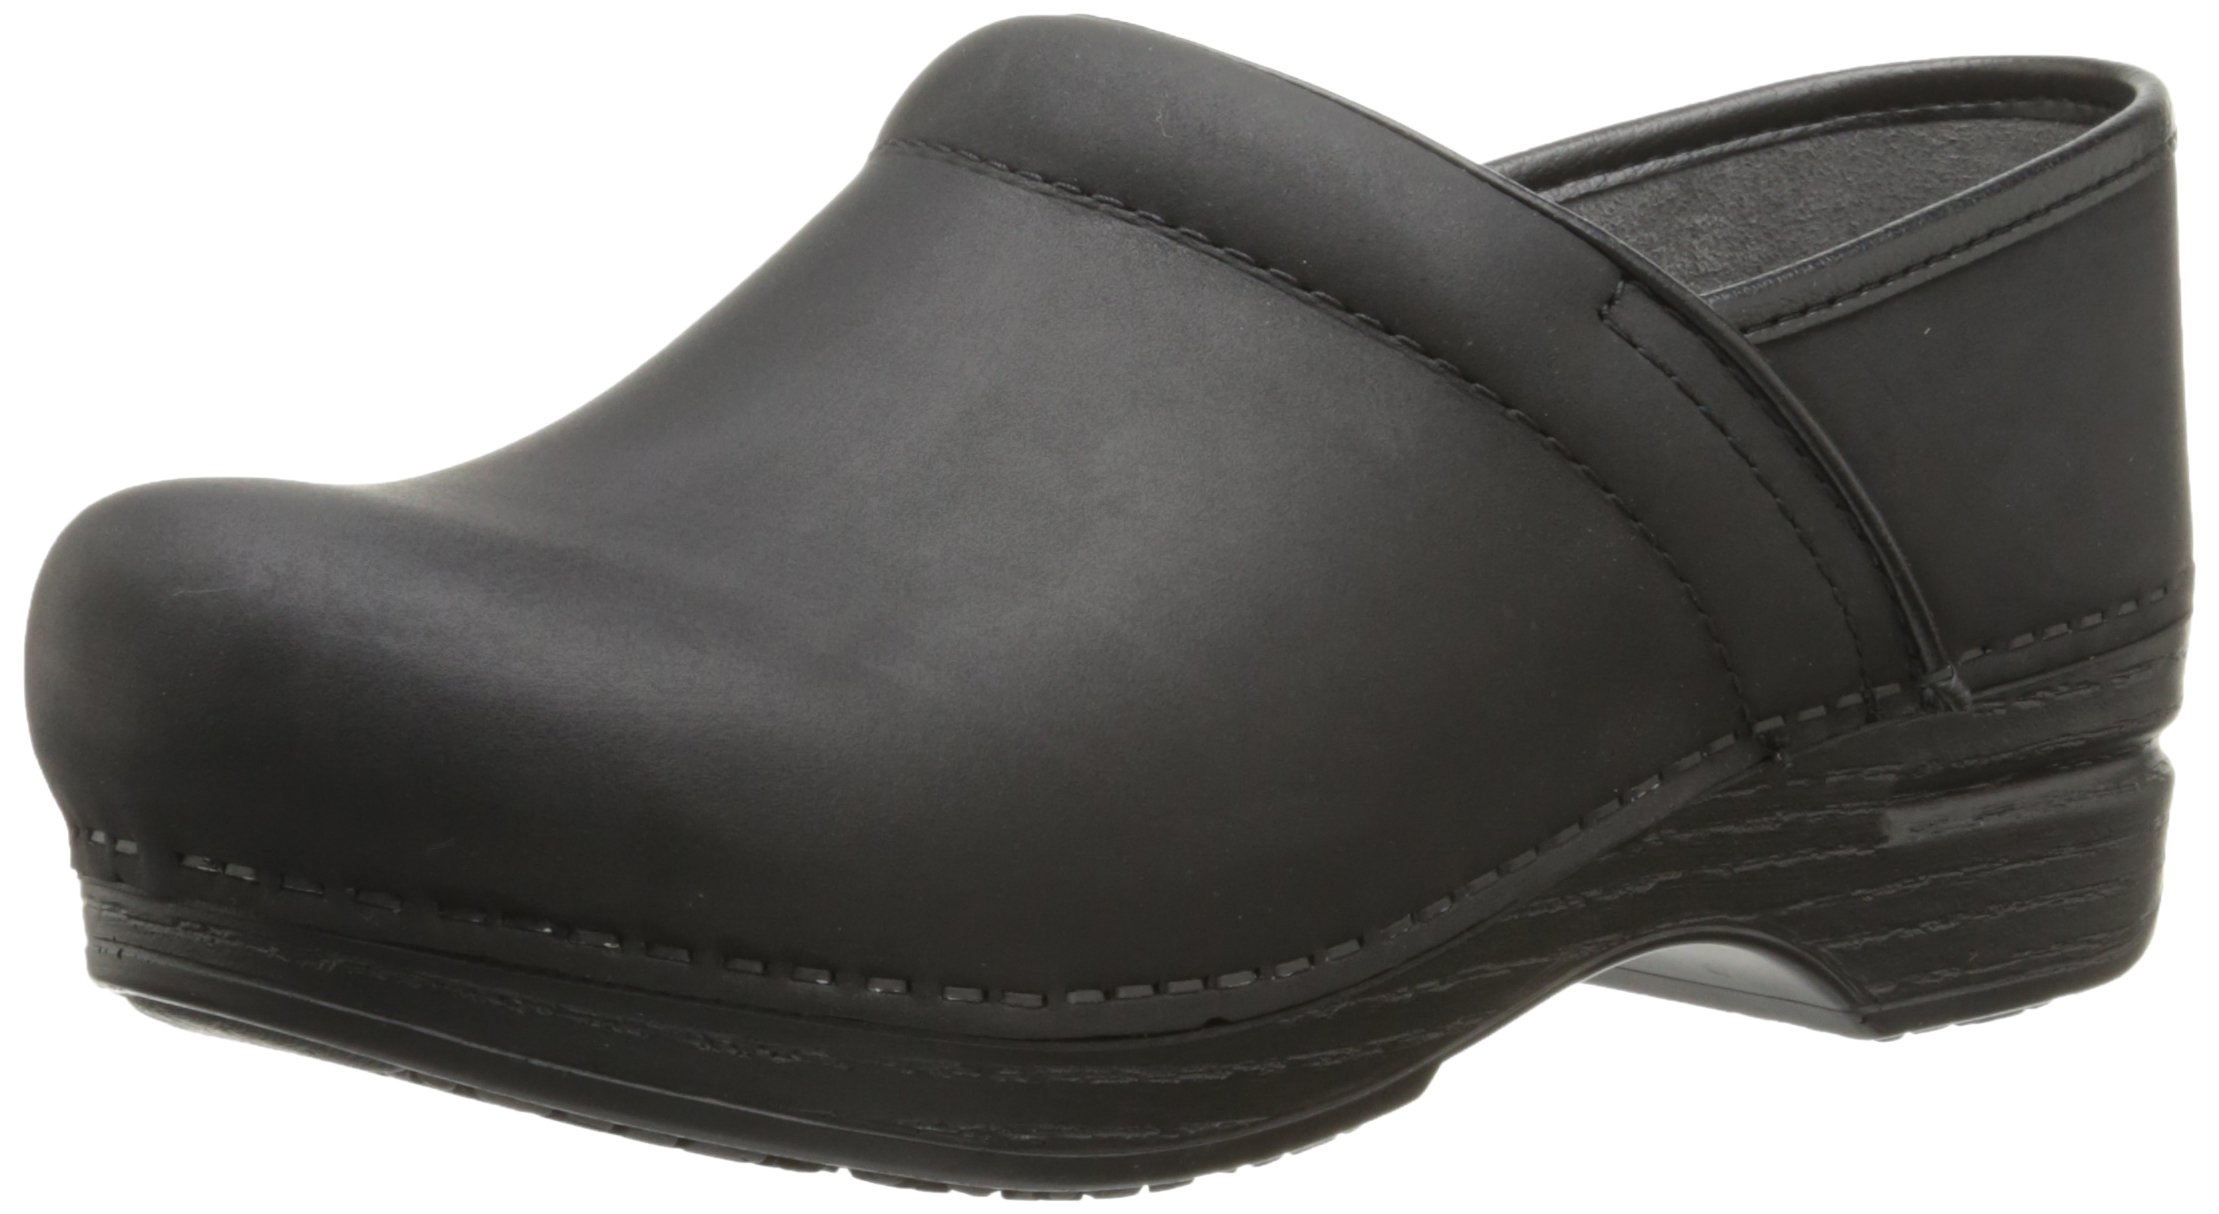 Dansko Women's Wide Pro XP Mule, Black Oiled, 39 EU/8.5-9 W US